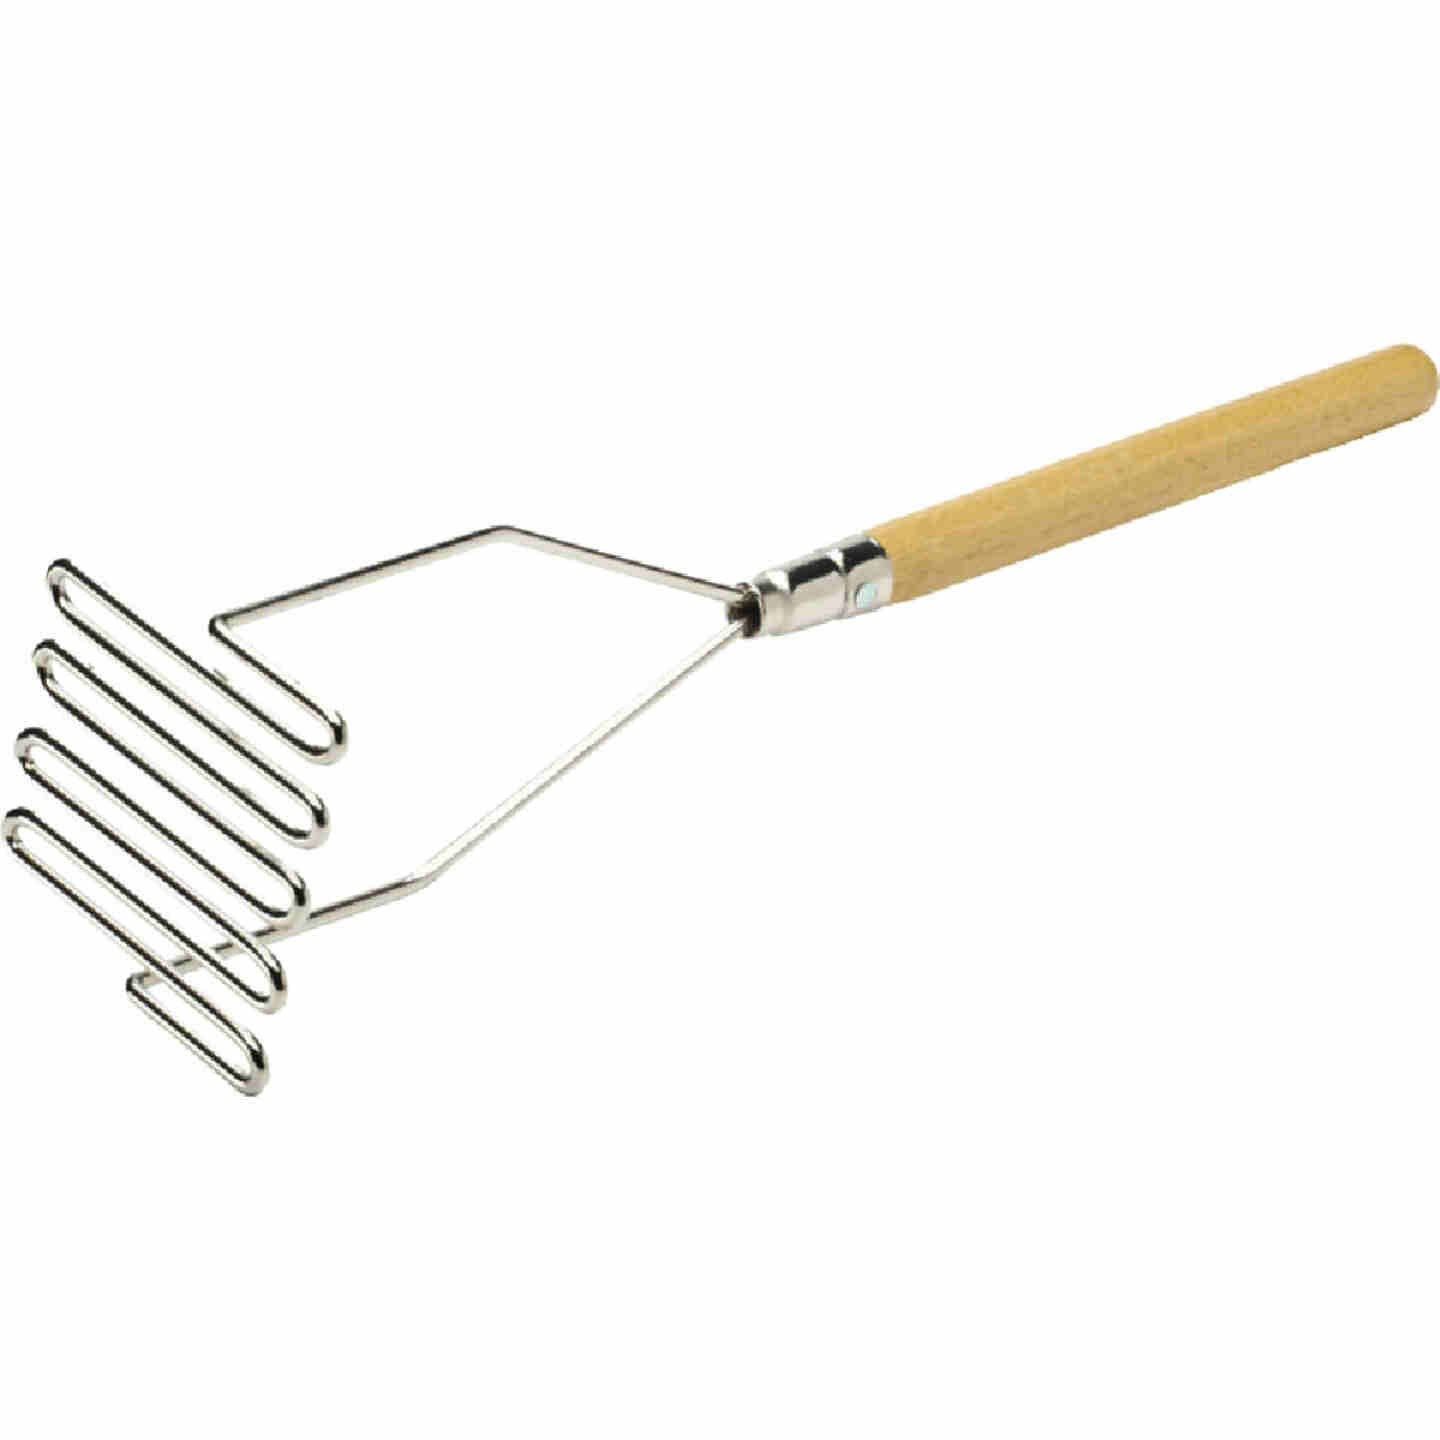 Marshalltown Drywall & Paint Steel 14 In. Mud Mixer, Wood Handle Image 1